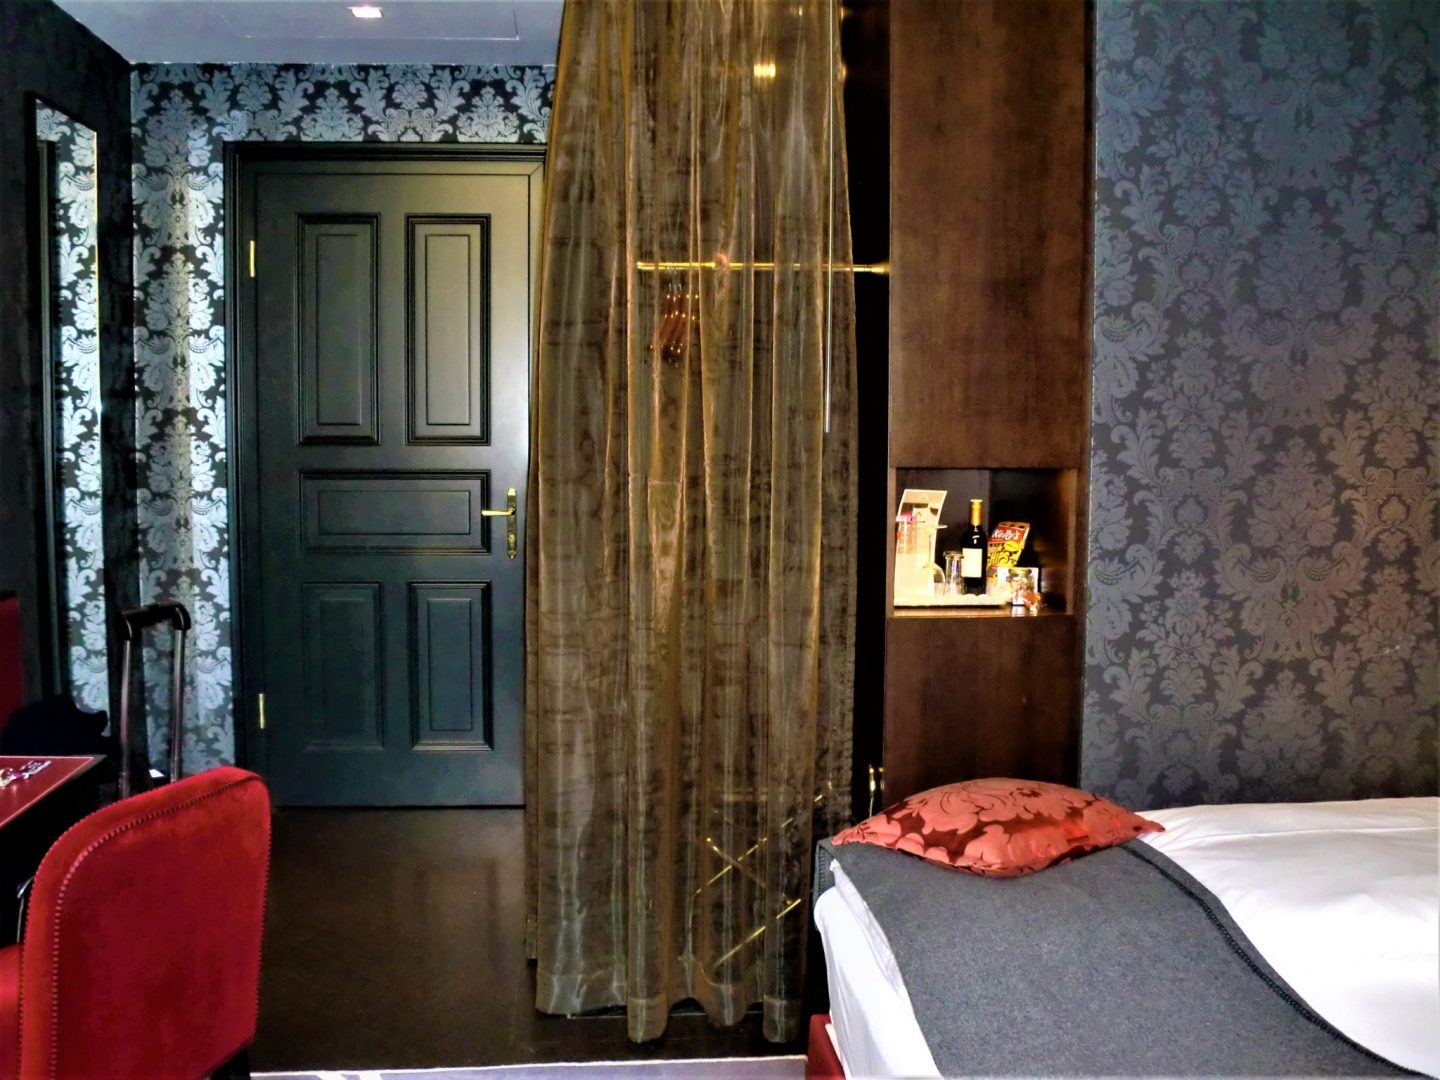 Boutique hotel in Vienna room 1440x1080 - Boutique hotel in Vienna: 1 amazing place for your stay